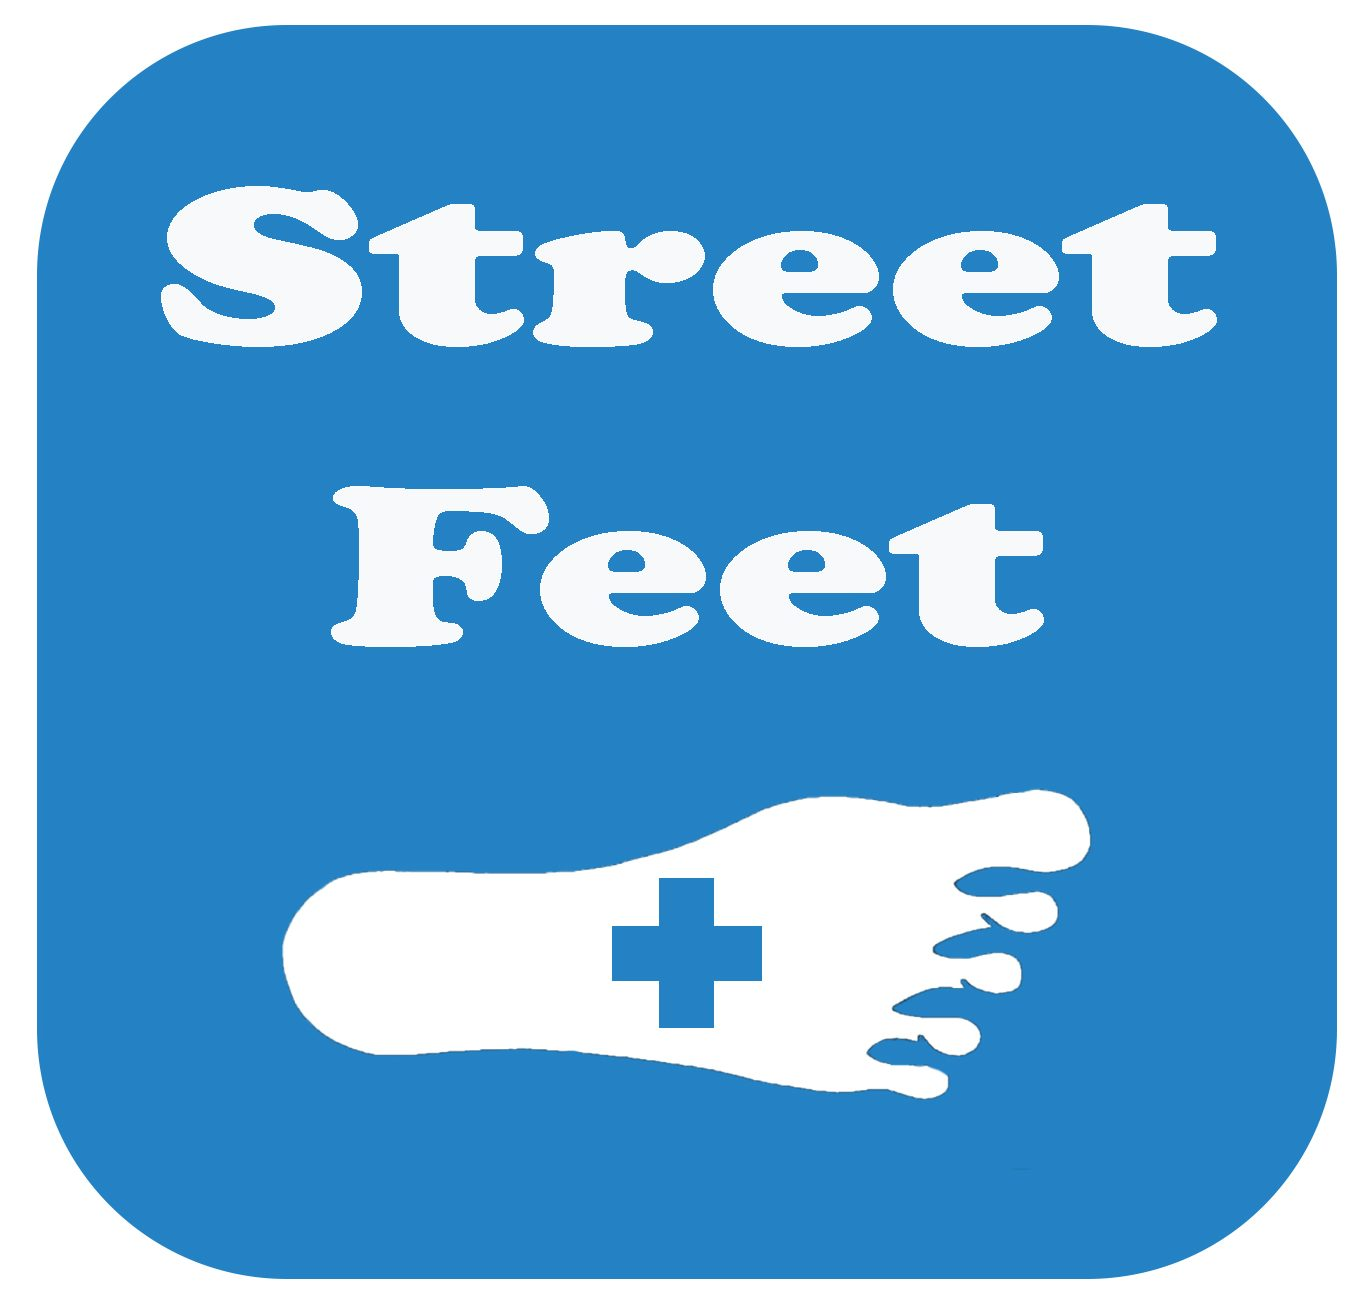 Street Feet – Put Your Feet in Safe Hands